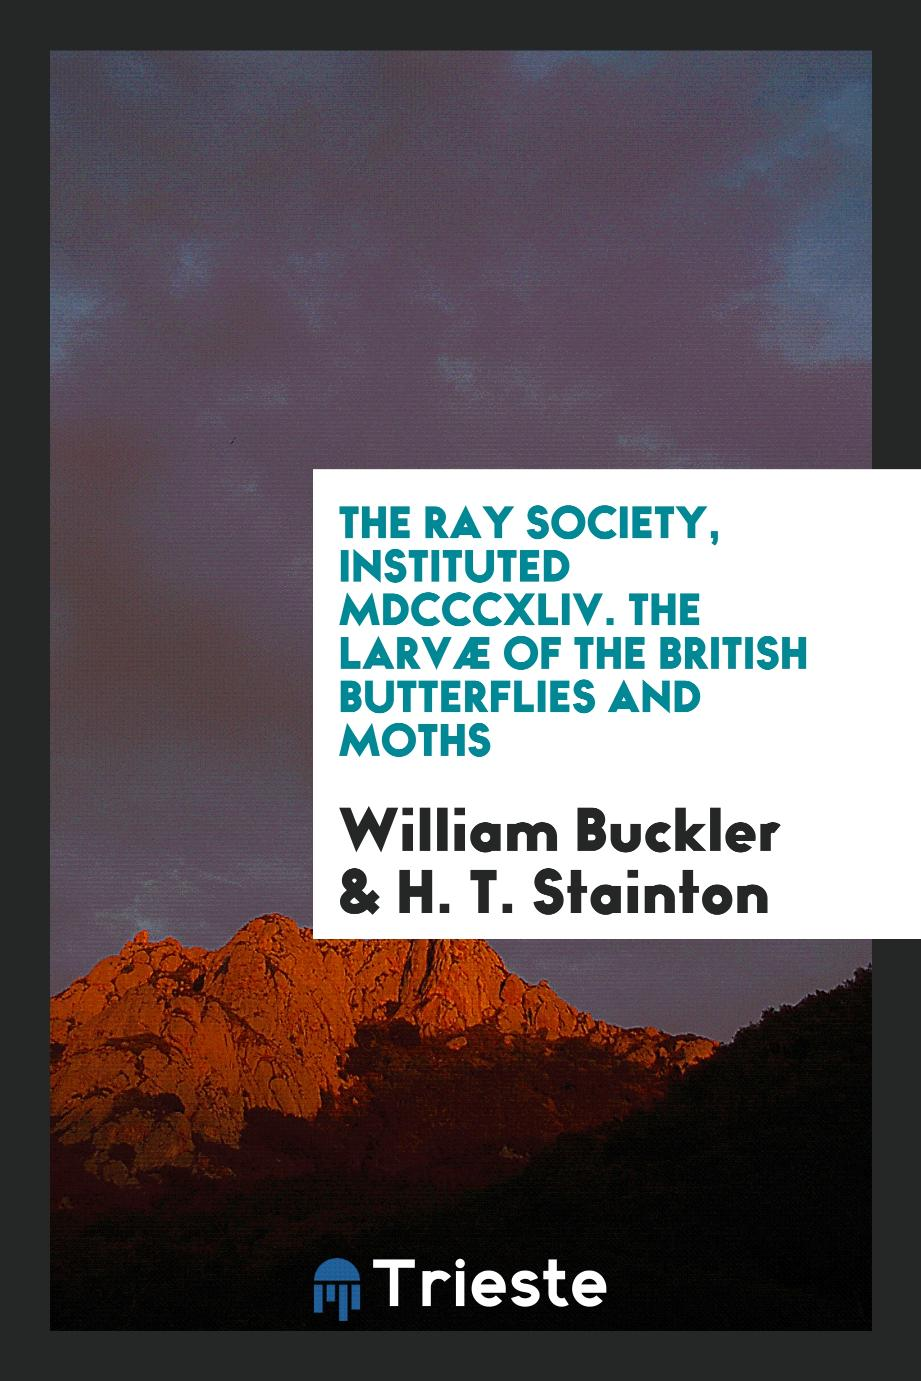 The Ray Society, Instituted MDCCCXLIV. The Larvæ of the British Butterflies and Moths